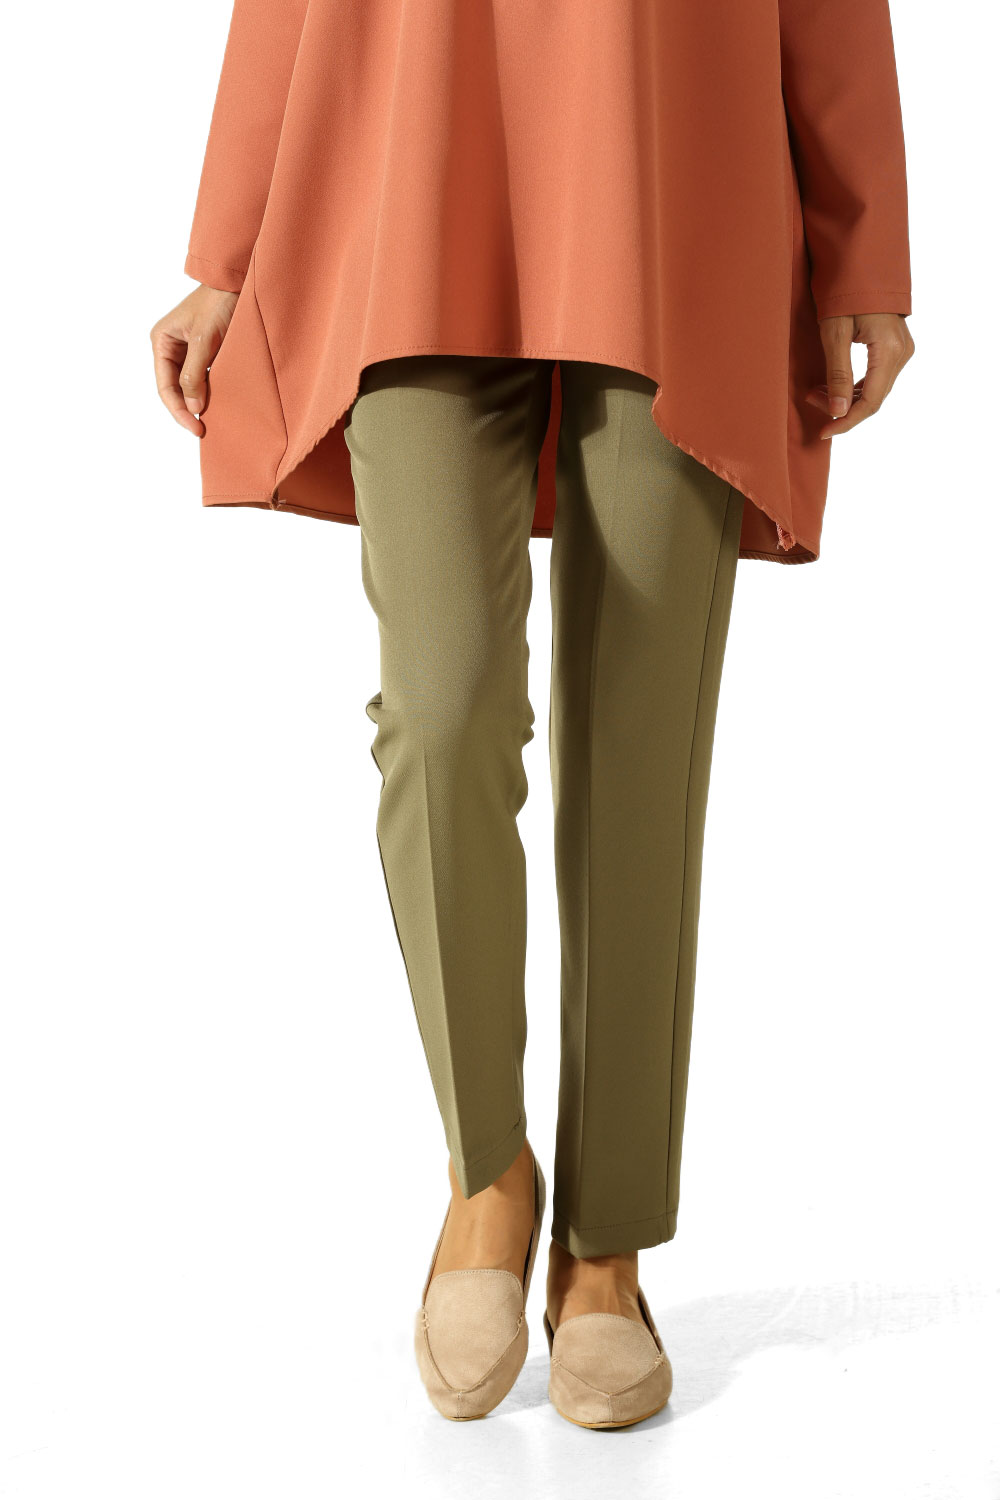 Skinny Fit Casual Chic Pants